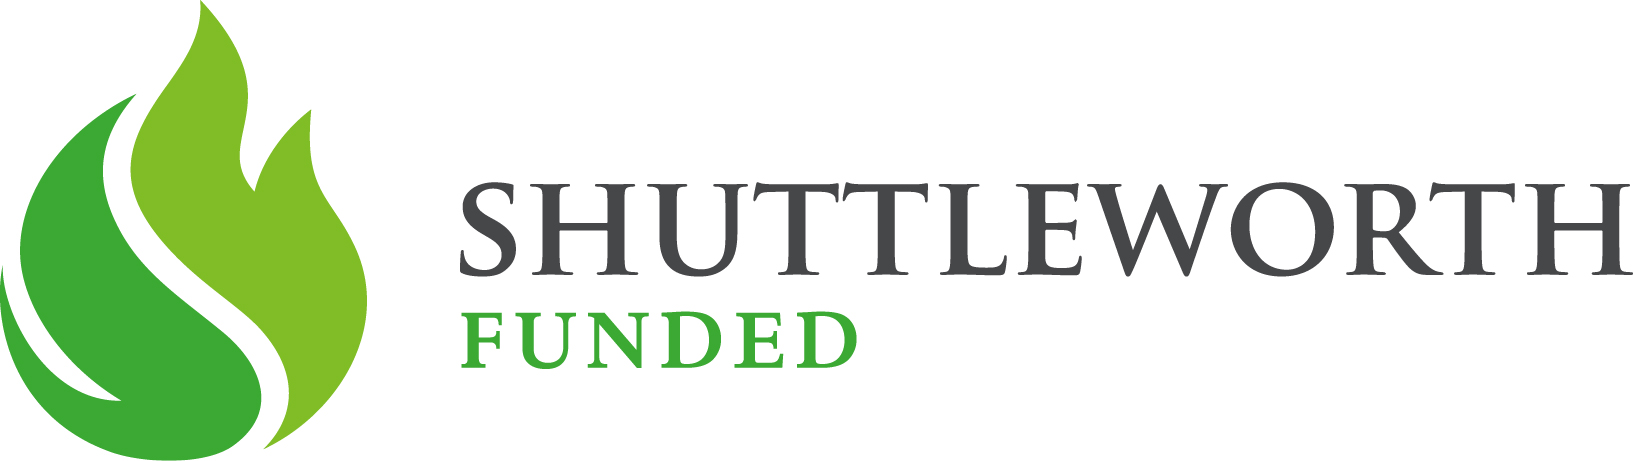 Funded by Shuttleworth Foundation